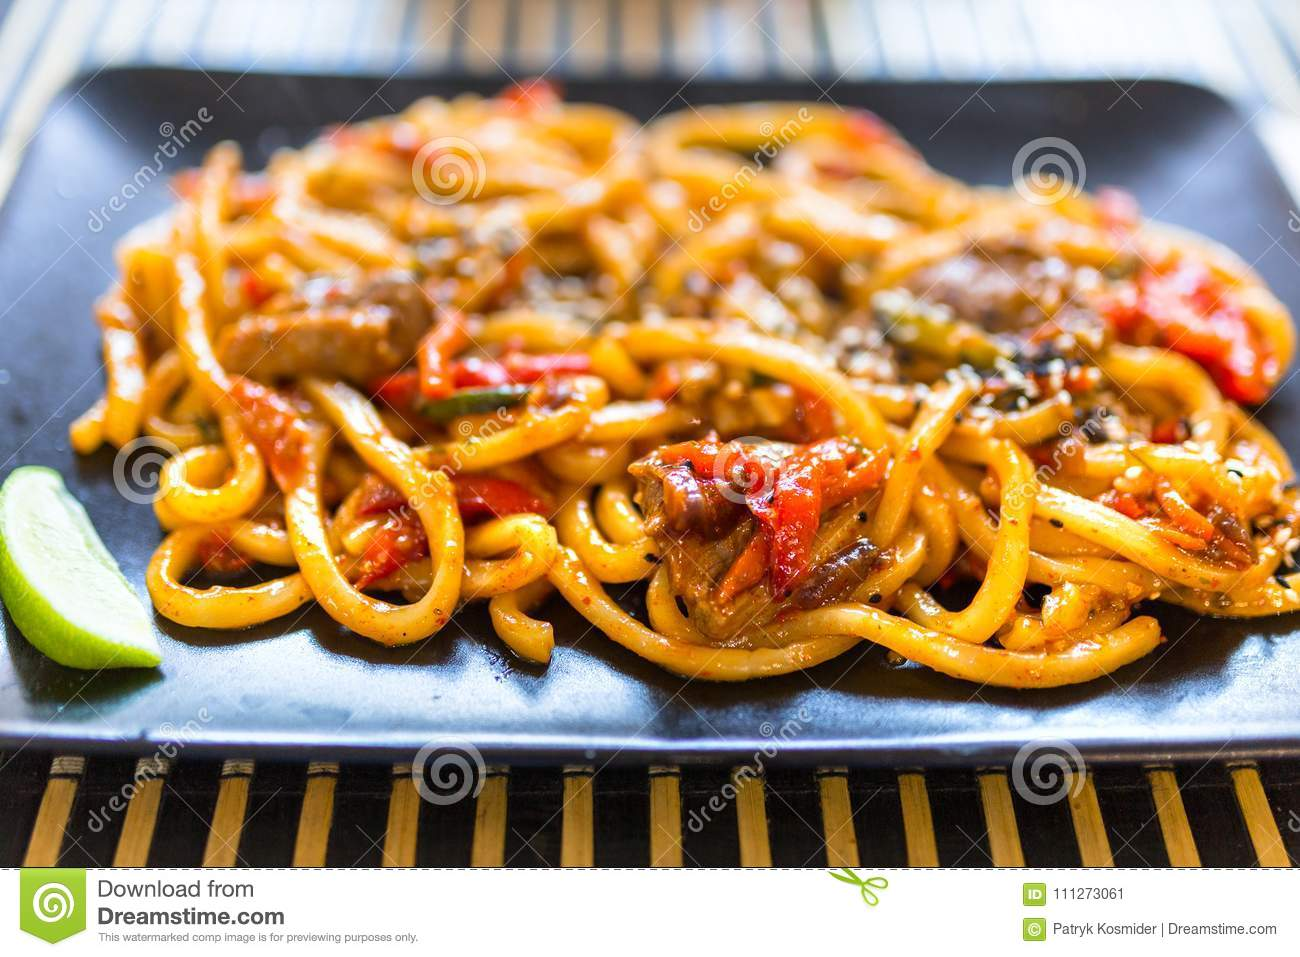 Udon noodles with duck